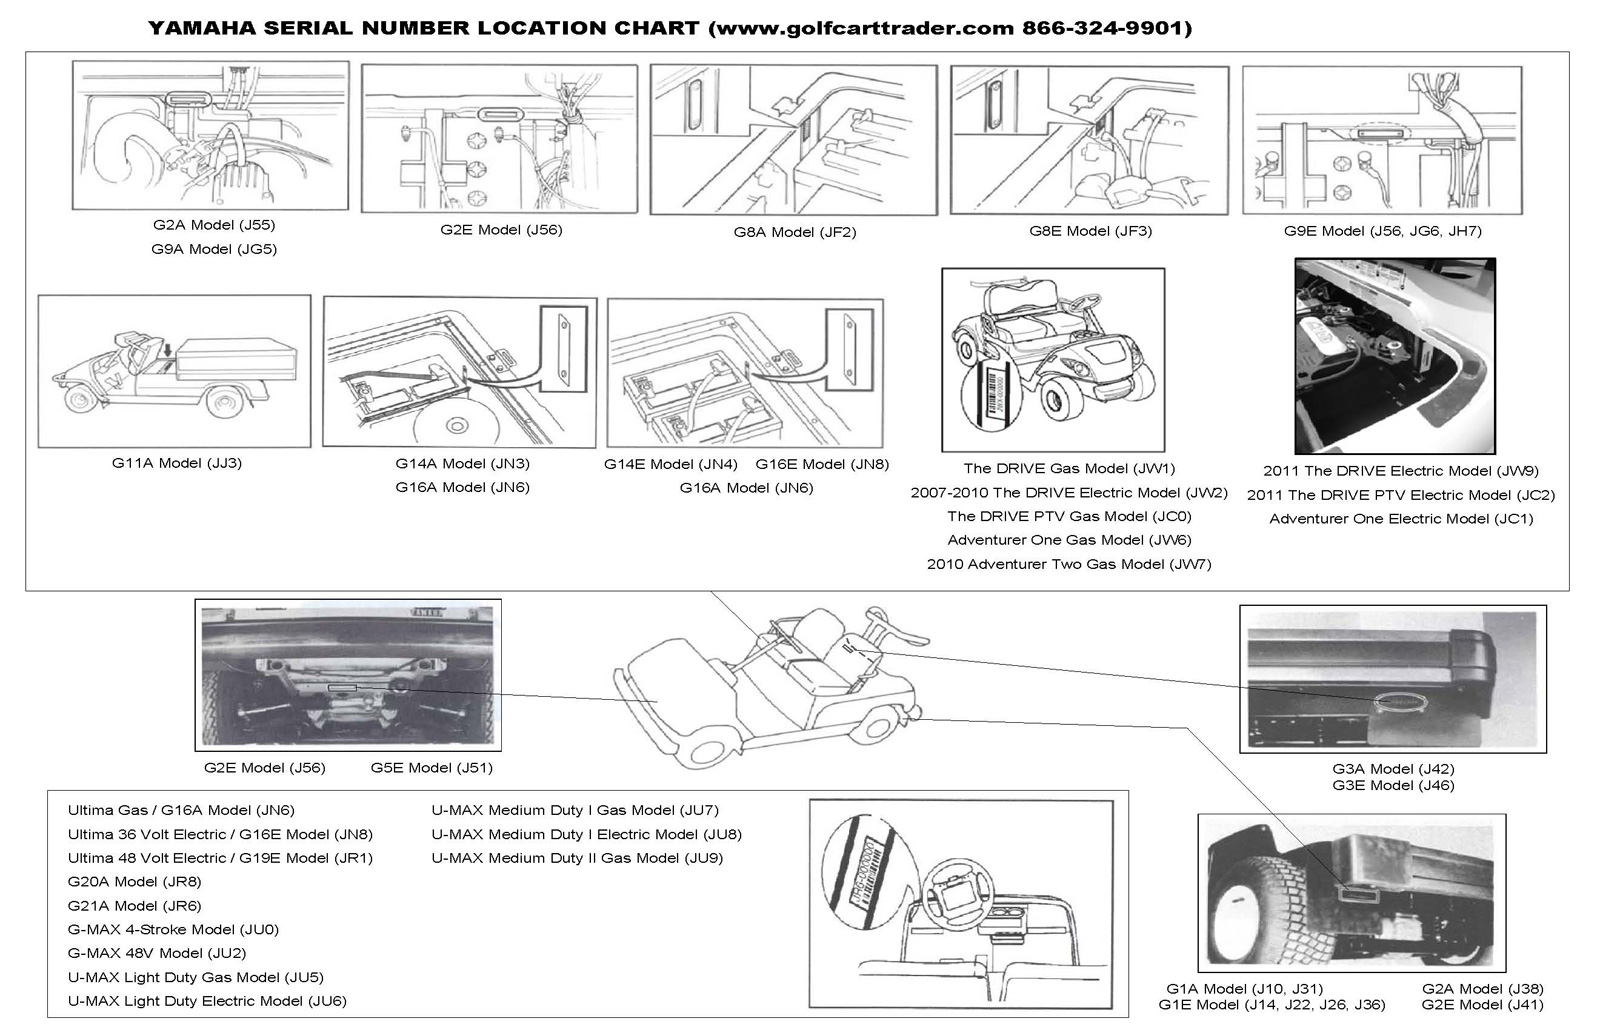 yamaha g wiring diagram yamaha image wiring diagram yamaha golf cart wiring diagram gas wiring diagram and hernes on yamaha g9 wiring diagram